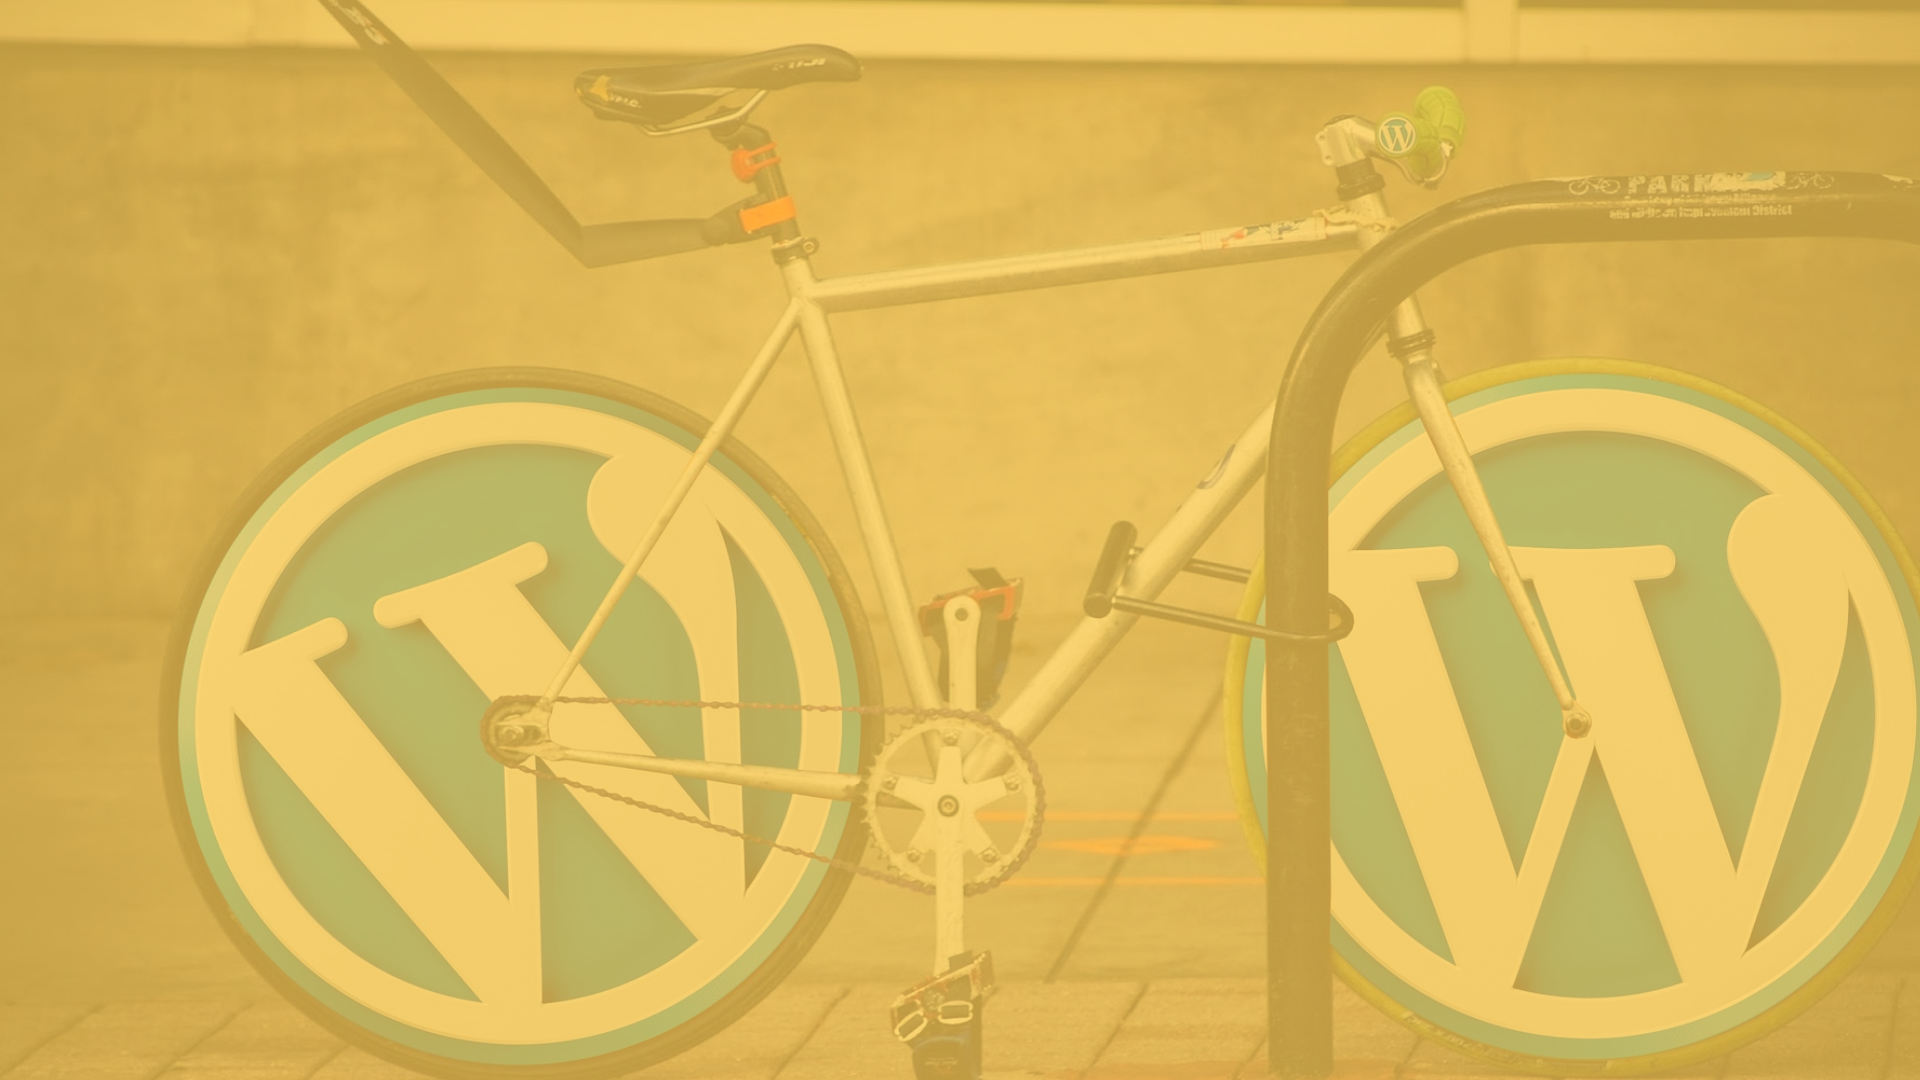 bicycle with the Wordpress logo used to replace the tires. Image is a yellow overlay colour